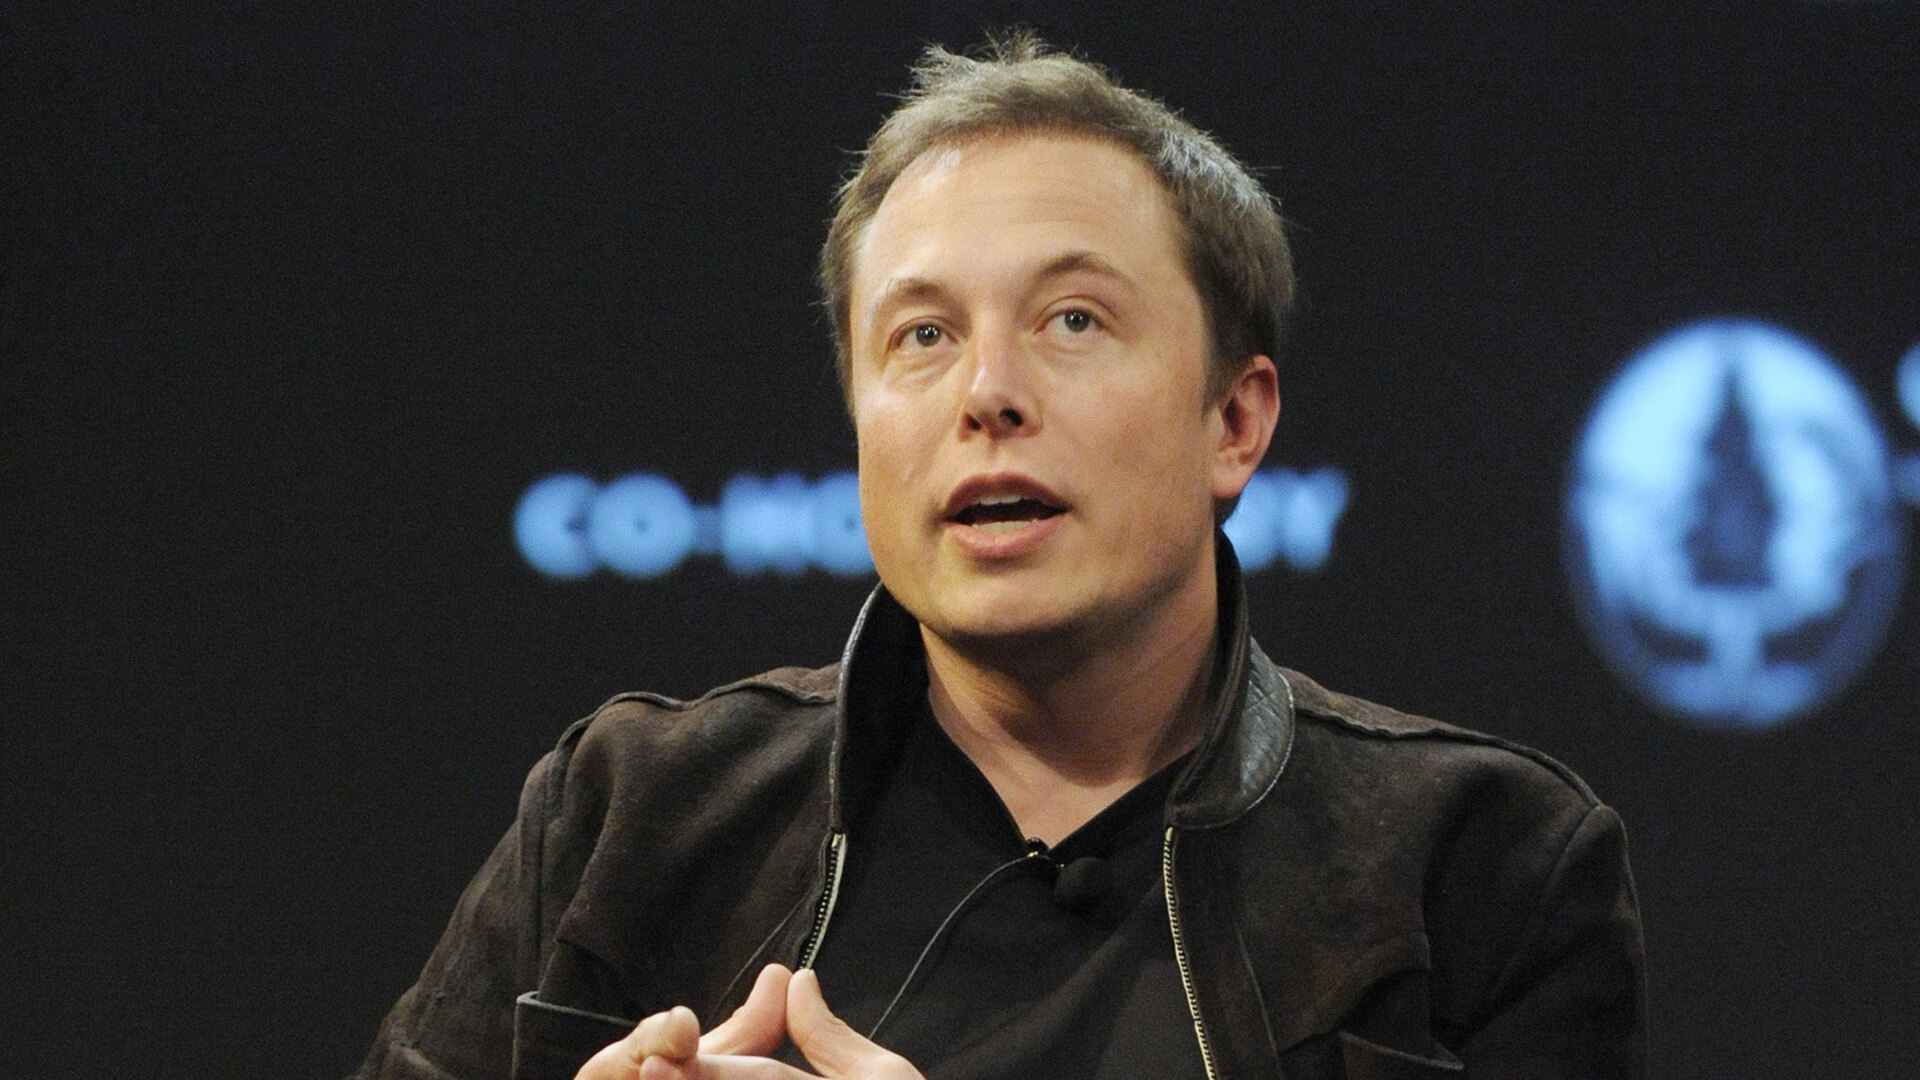 Elon Musk's Biggest Bets That Paid Off